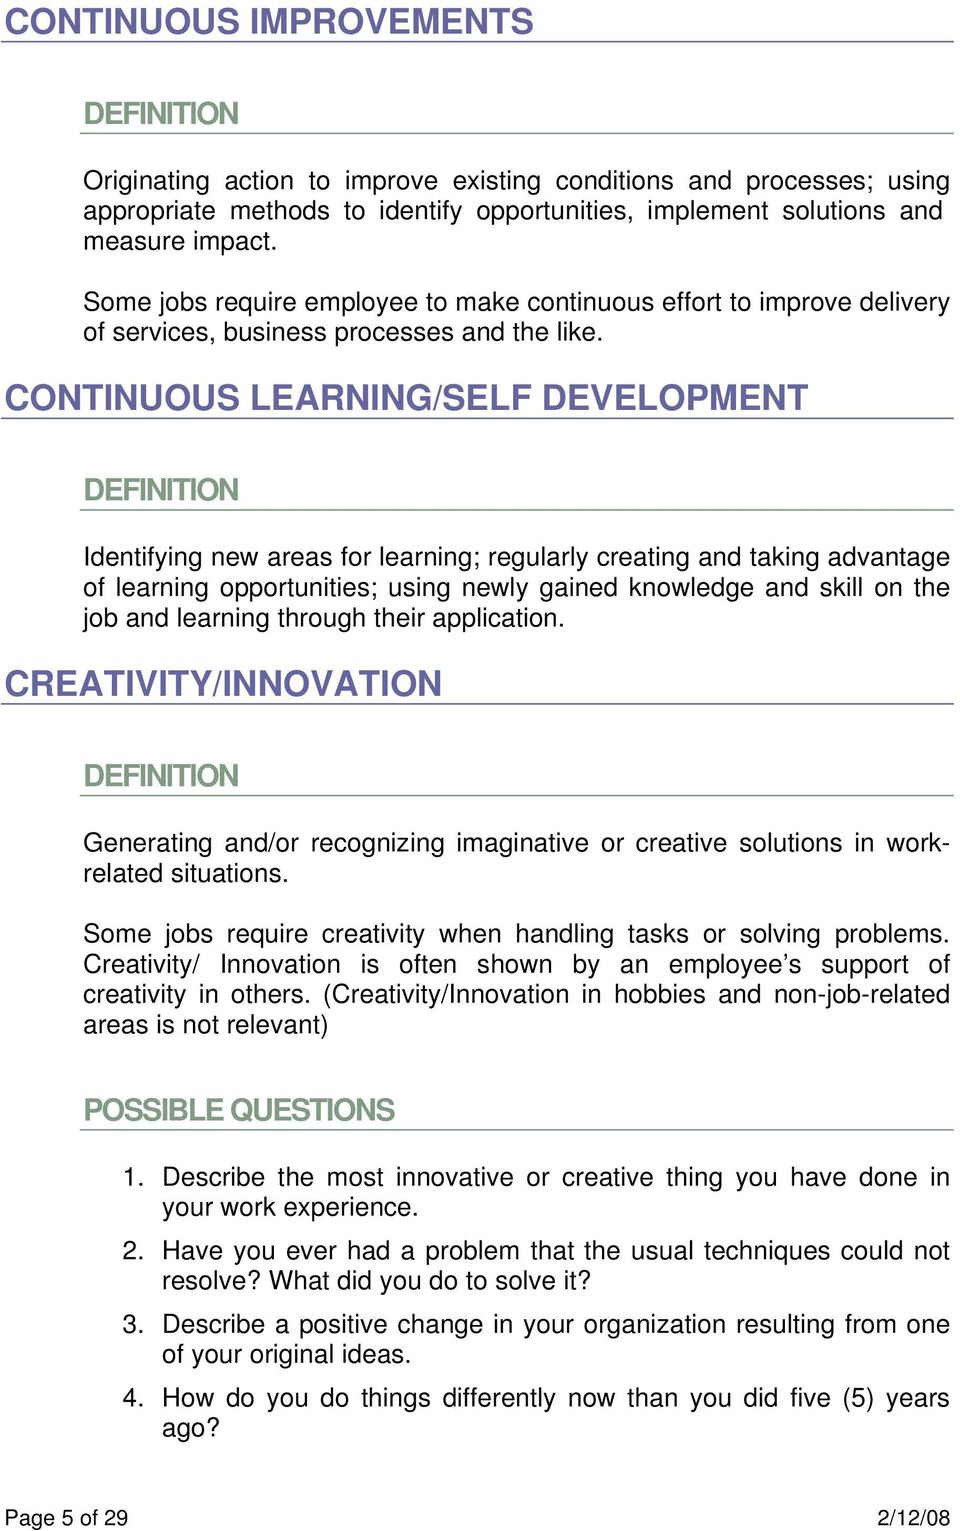 CONTINUOUS LEARNING/SELF DEVELOPMENT Identifying new areas for learning; regularly creating and taking advantage of learning opportunities; using newly gained knowledge and skill on the job and